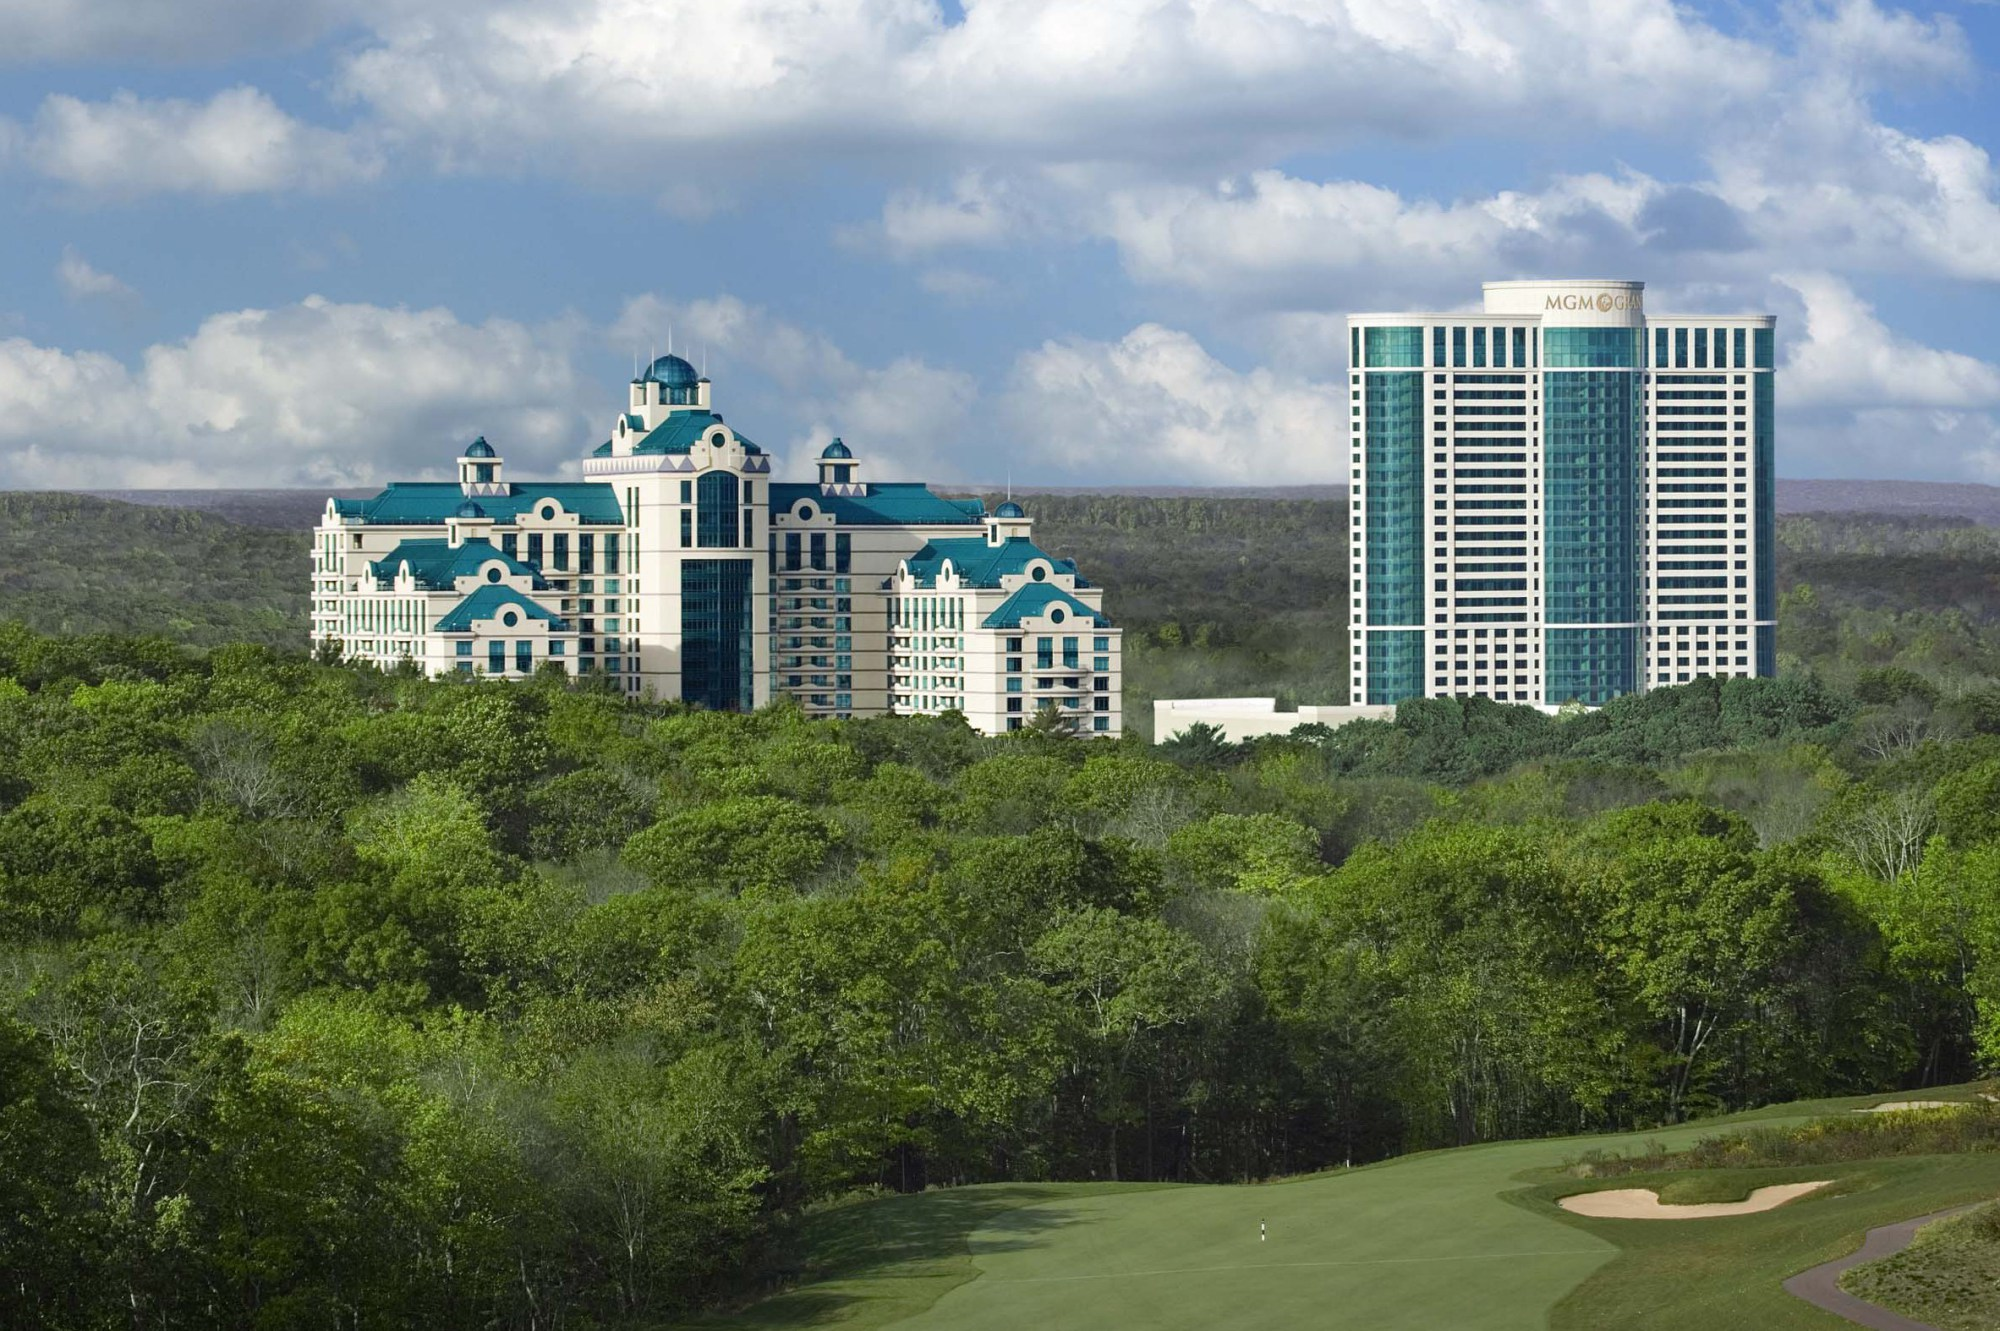 2.Foxwoods Resort Casino – Connecticut, USA